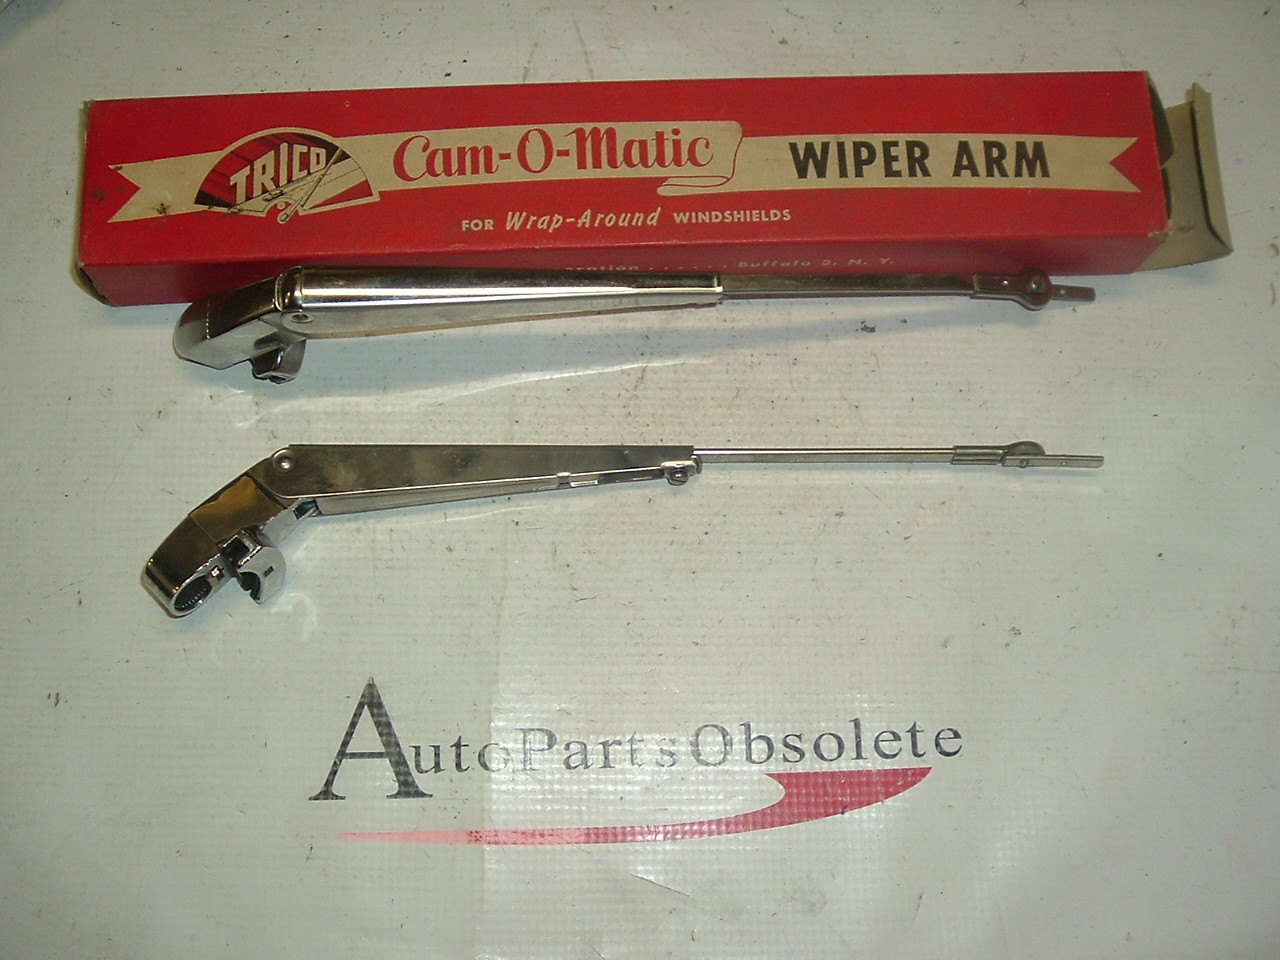 1955 1956 Cadillac Buick Packard chrome cam o matic wiper arms pair (A al175)